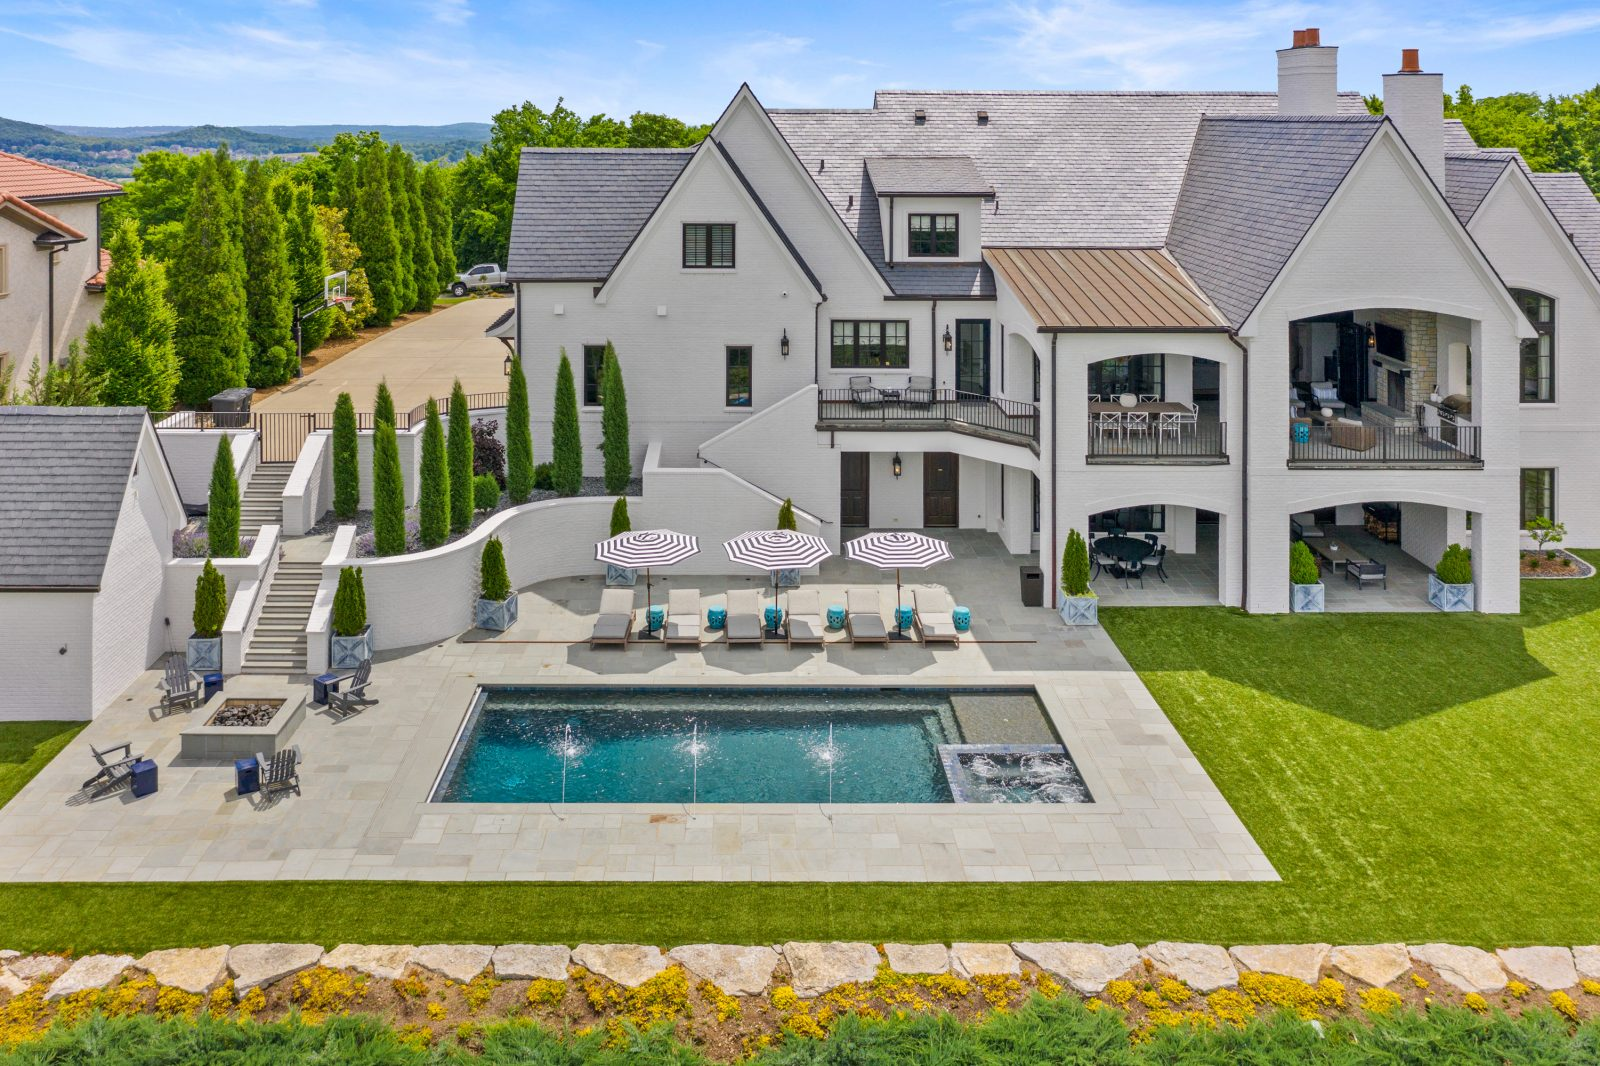 Full backyard, pool, and rear elevation of house in Franklin, TN